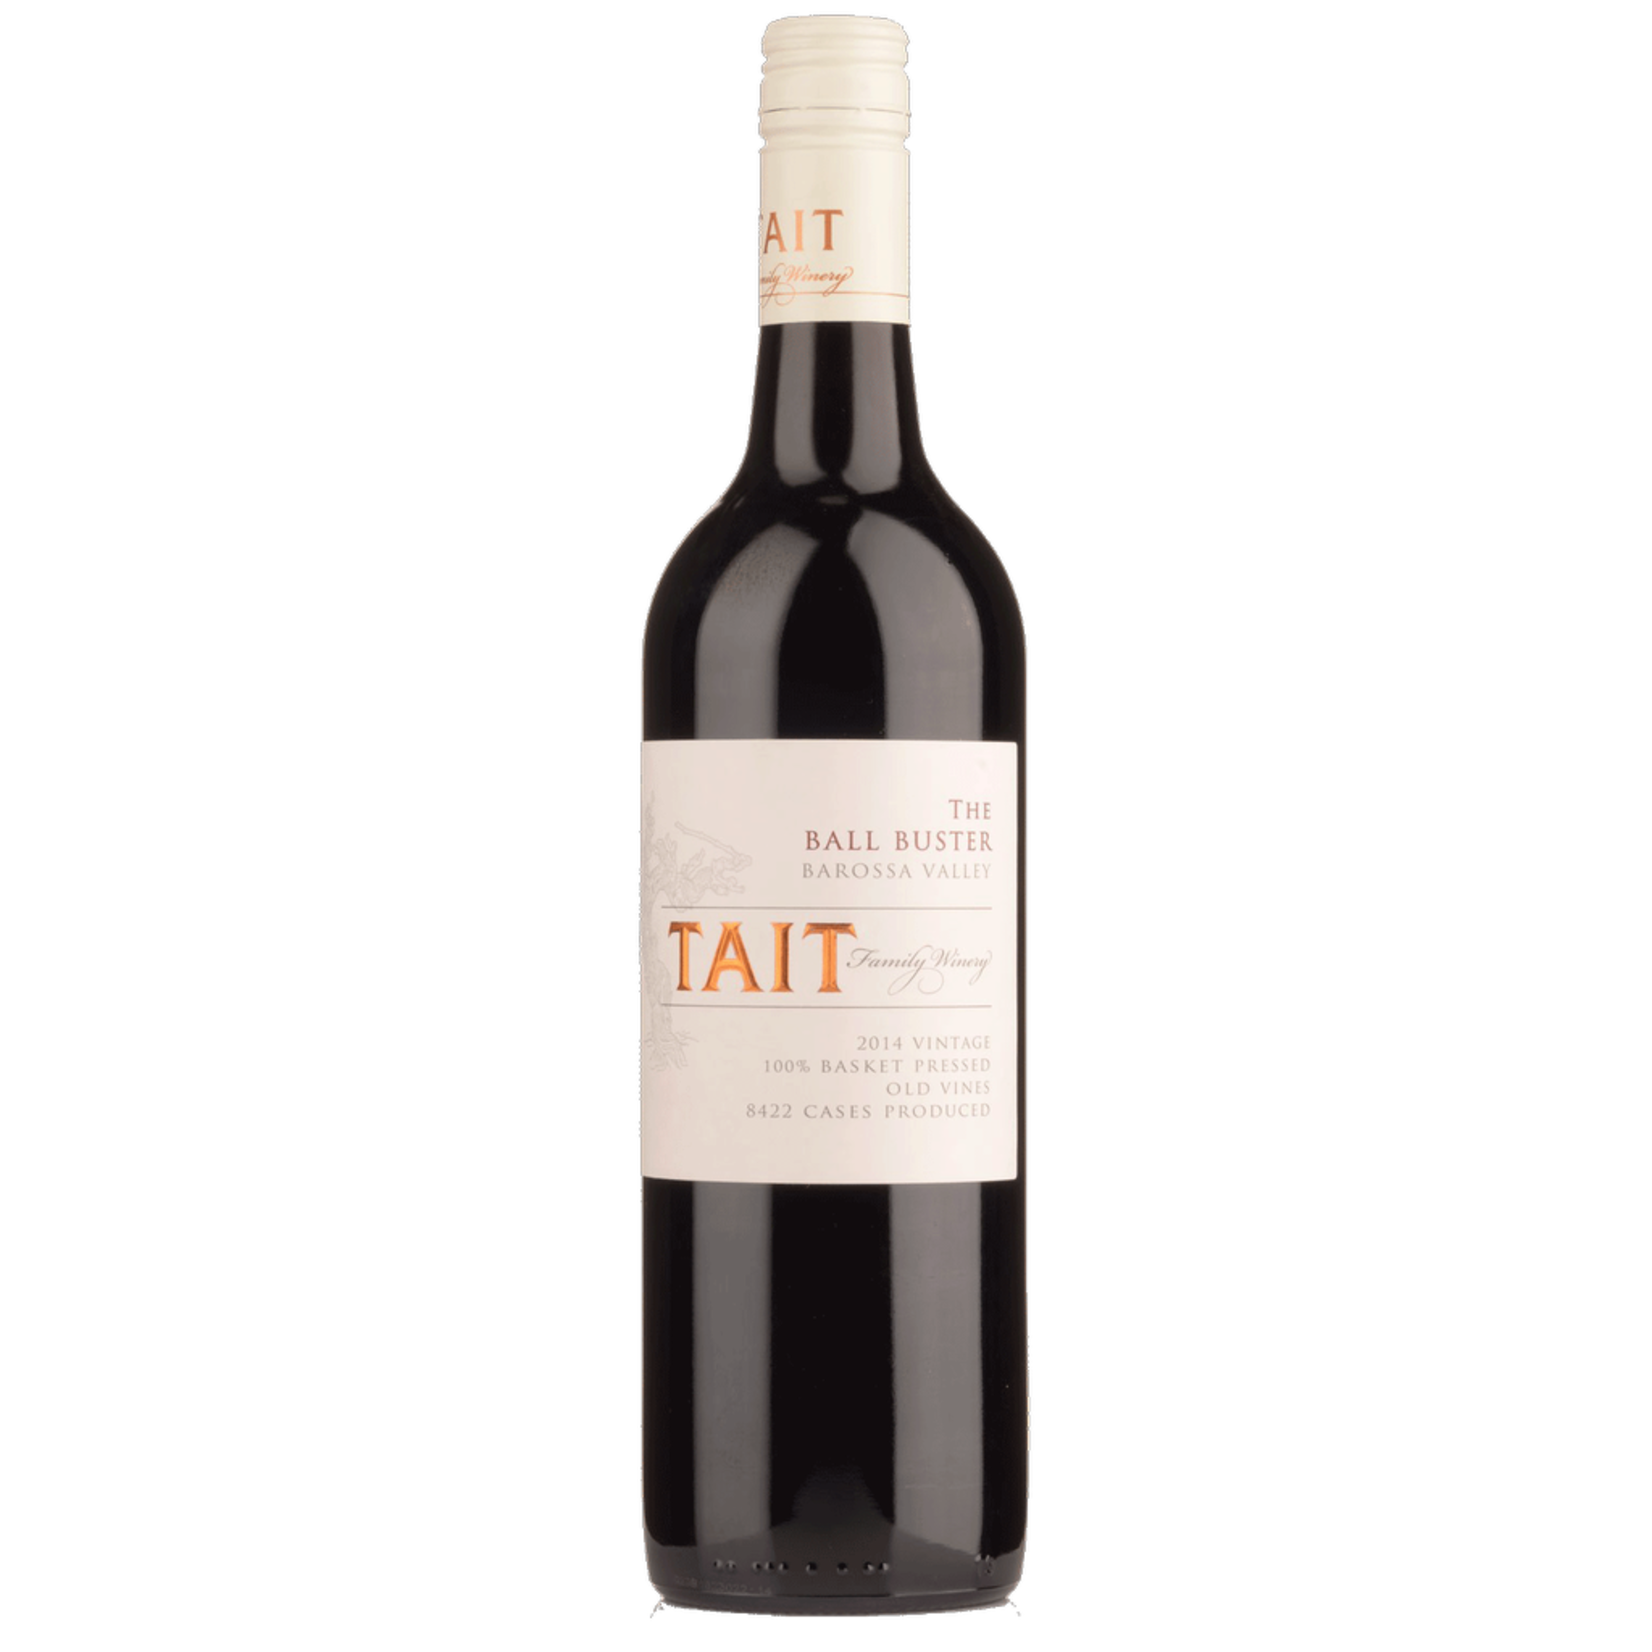 Wine Tait Wines Barossa Valley The Ball Buster 2017